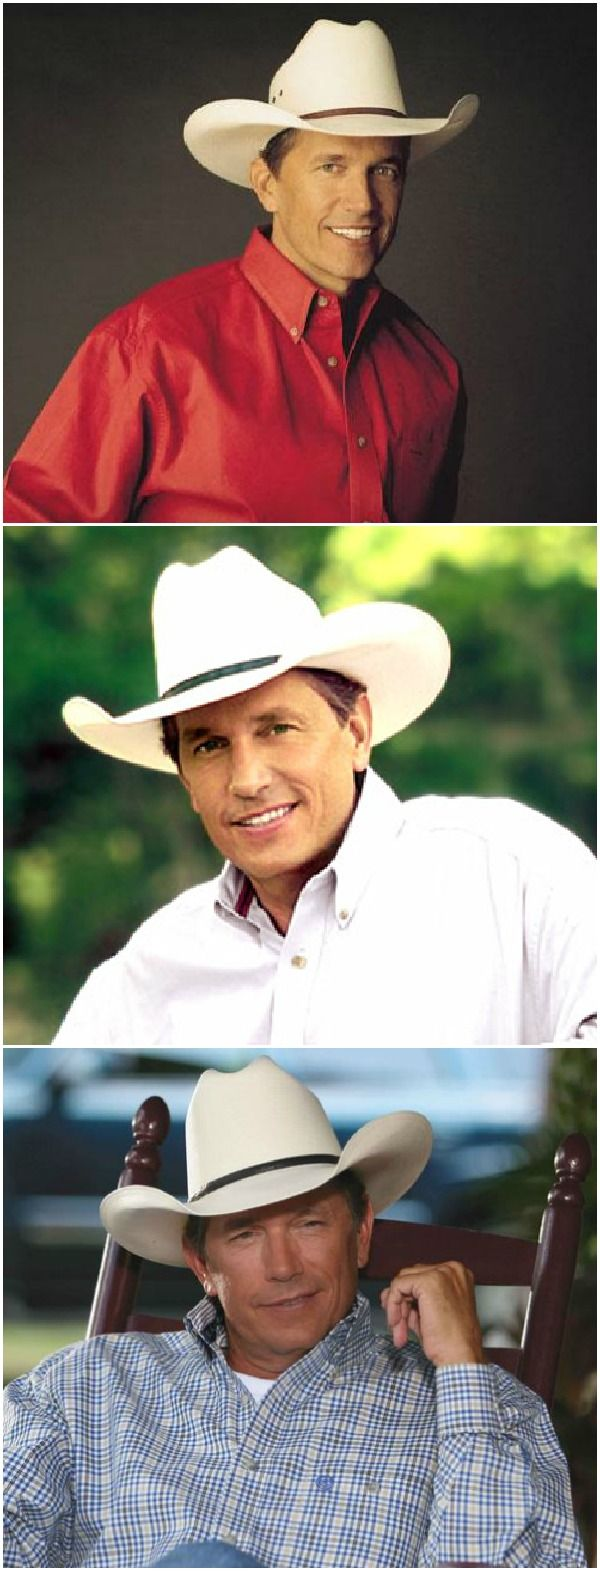 George Strait ~ The king of country music!